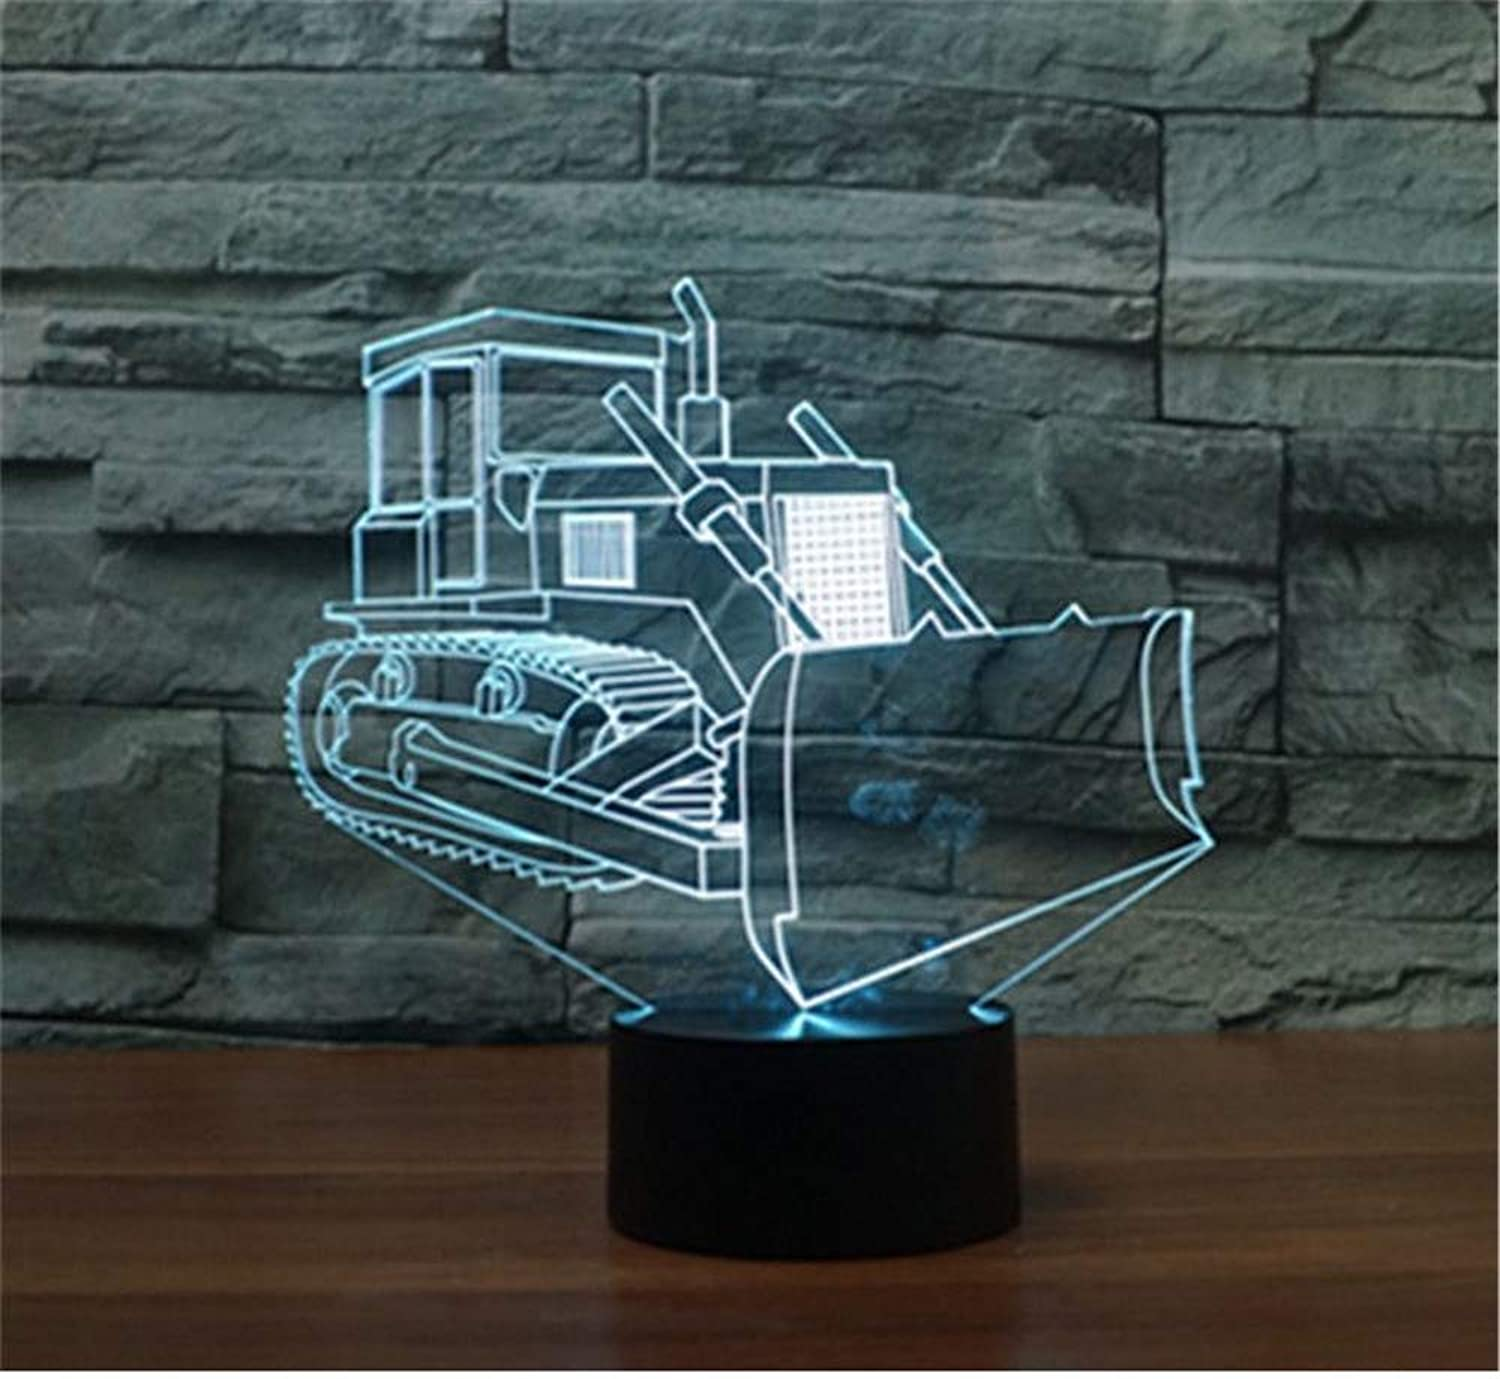 3D LED Night Light Table Desk Lamps 3D Optical Illusion Visual Lamp 7 colors Touch Table Desk Lamp for Christmas Birthday Gift Bulldozer